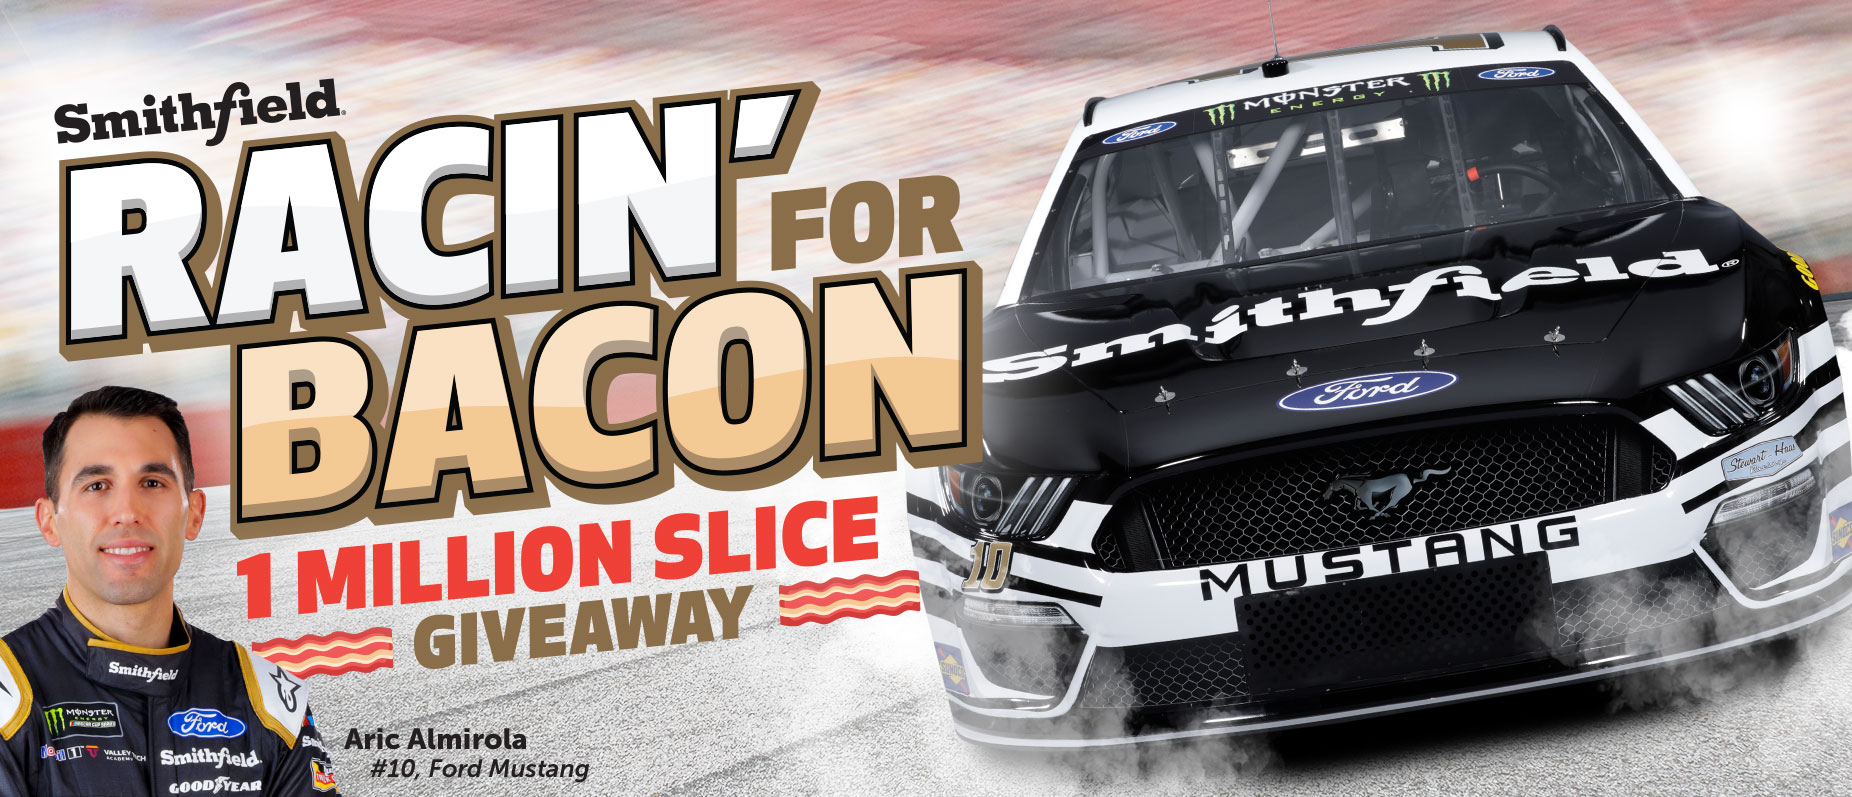 Win 100,000 Slices of Bacon or $43,688 Cash